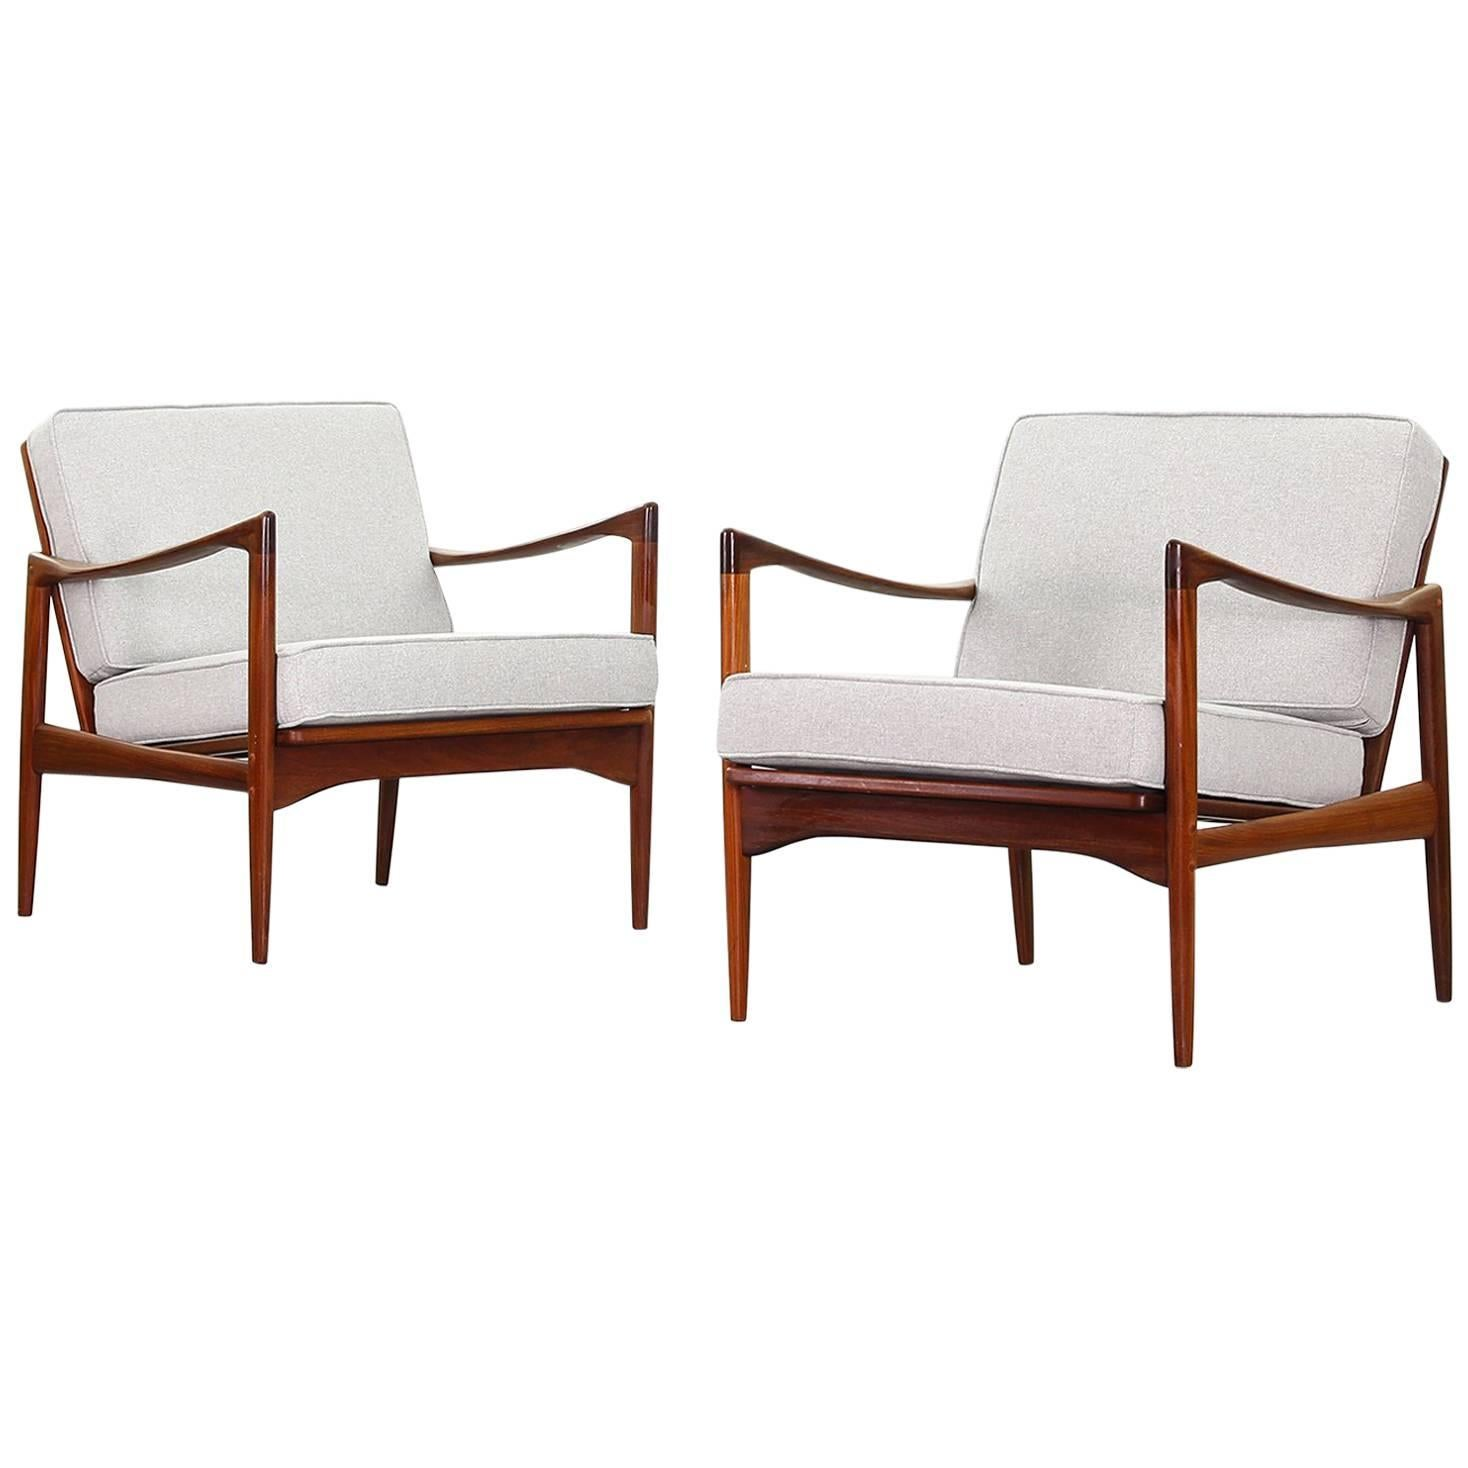 Pair Of Lounge Chairs By Ib Kofod Larsen For OPE, Newly Reupholstered